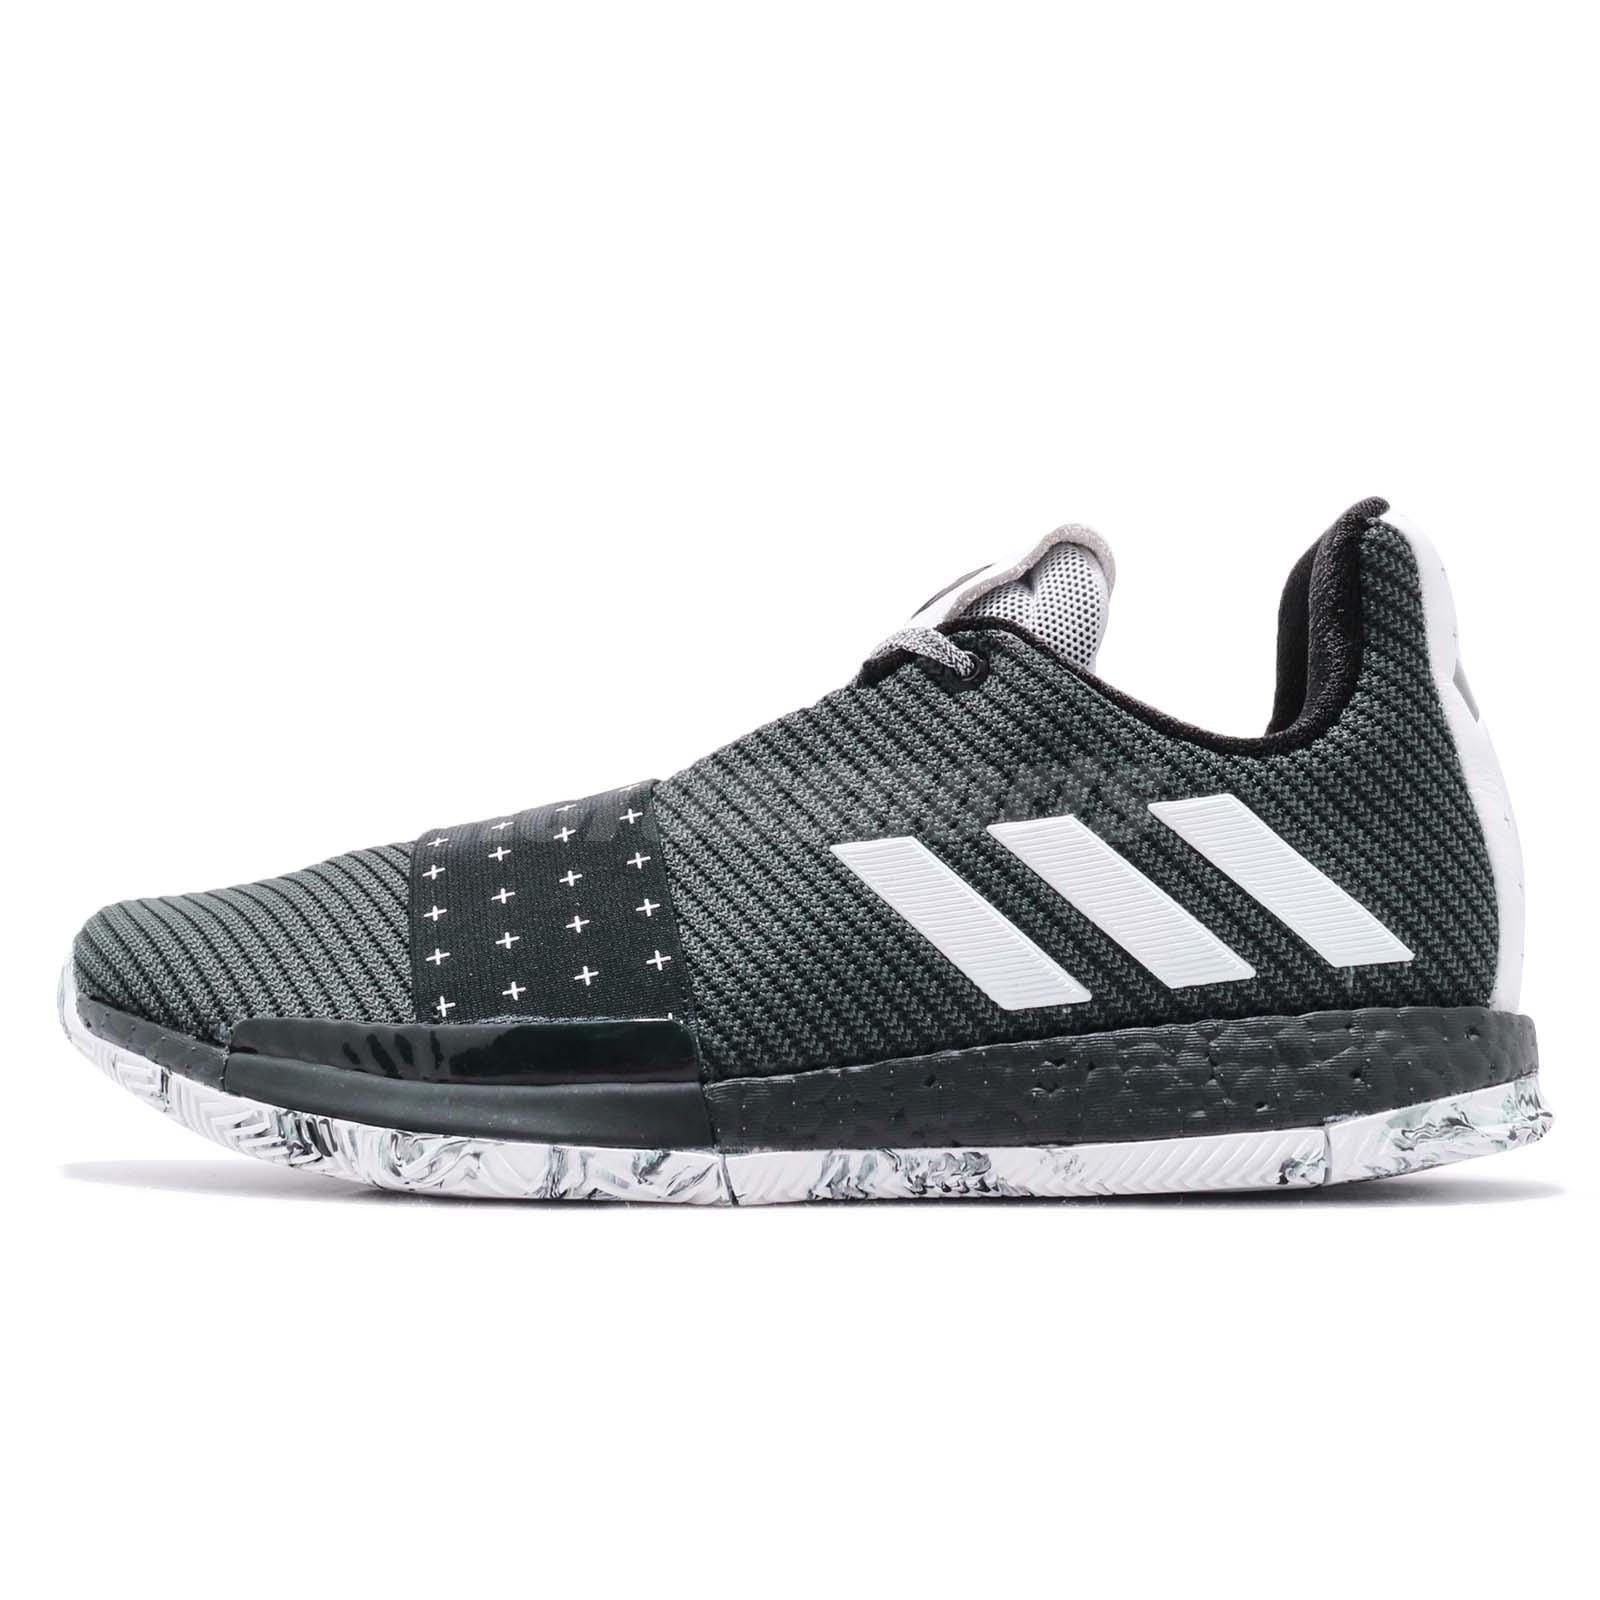 7977cb4669f4 adidas Harden Vol. 3 Boost James Black White Men Basketball Shoes Sneaker  BB7723